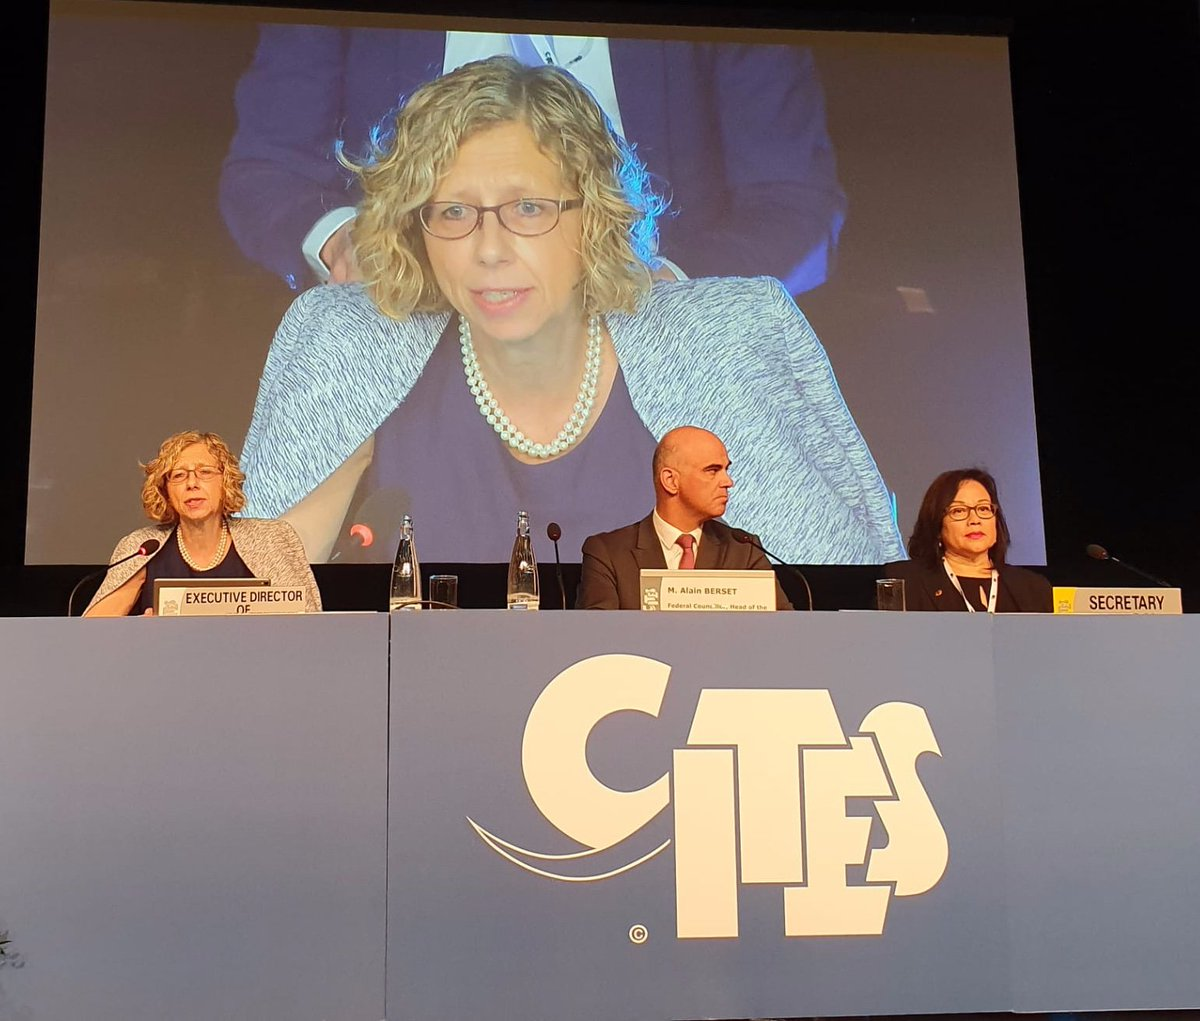 Honoured to speak at the opening of the 18th Conference of Parties to @CITES. #CITESCoP18 #WorldWildlifeConference My remarks 👉 bit.ly/31NQowO